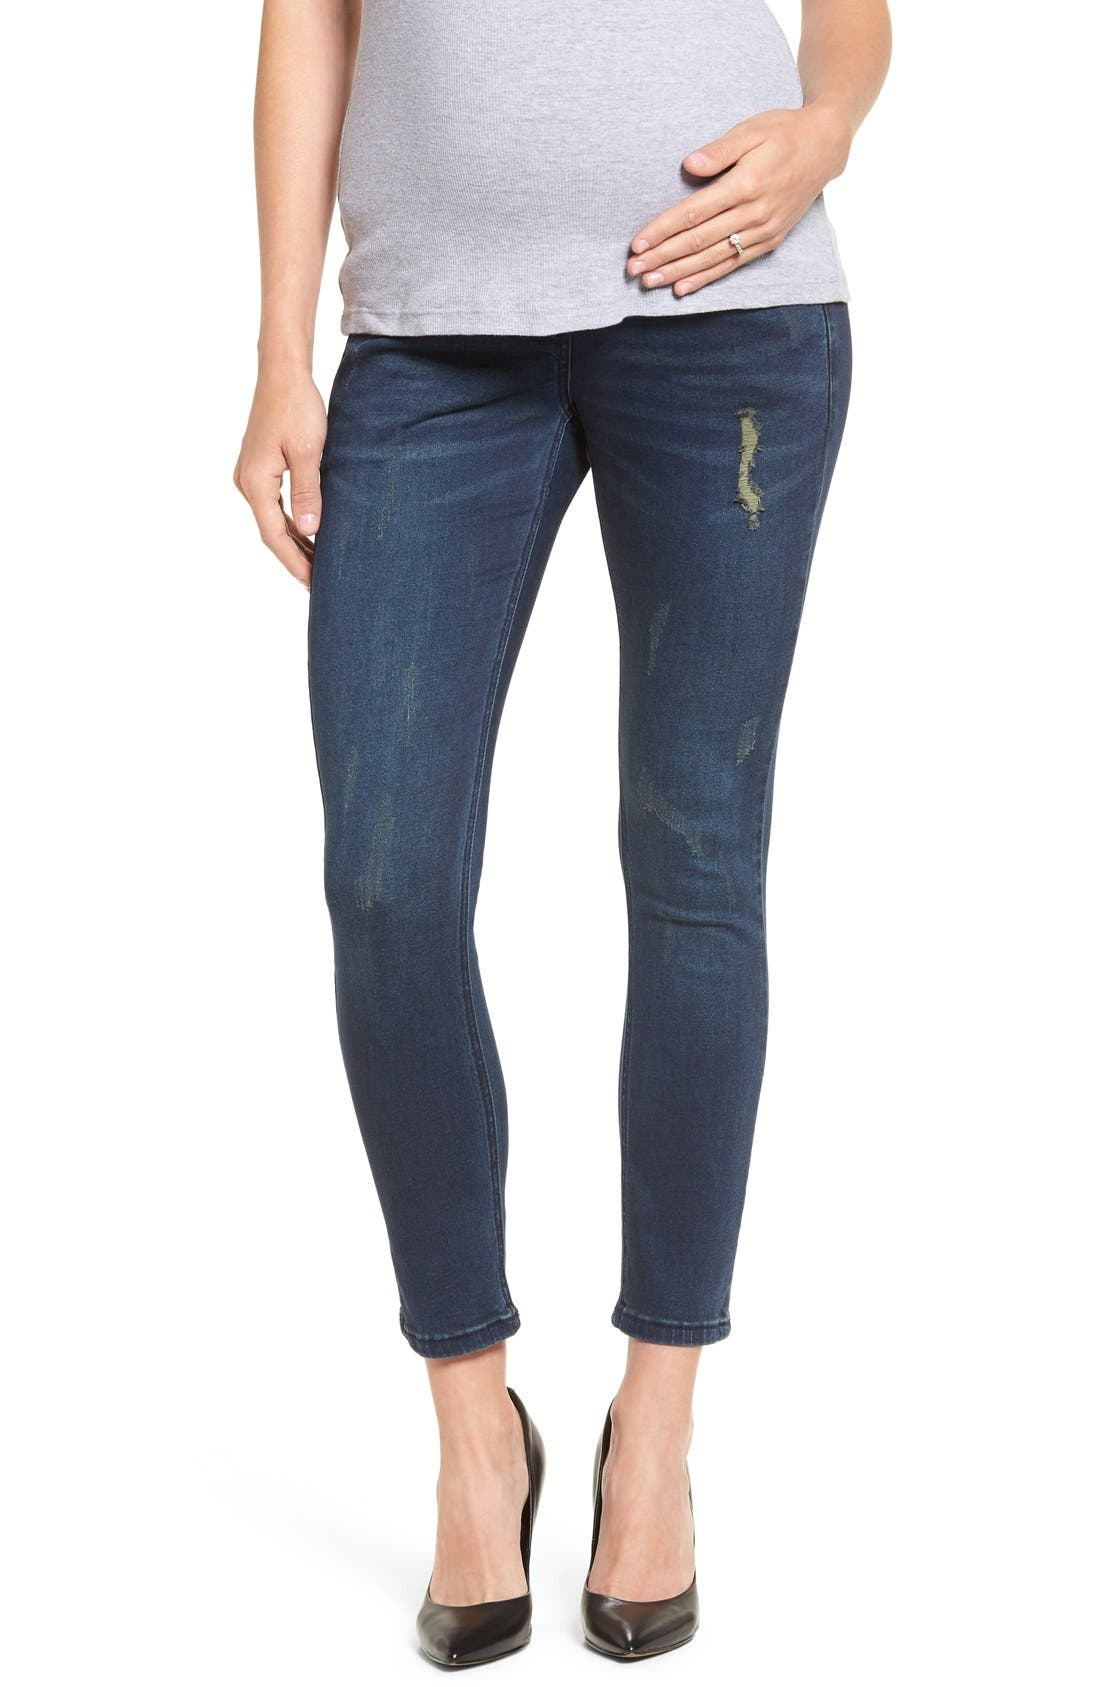 Distressed Skinny Maternity Jeans,                             Main thumbnail 1, color,                             400